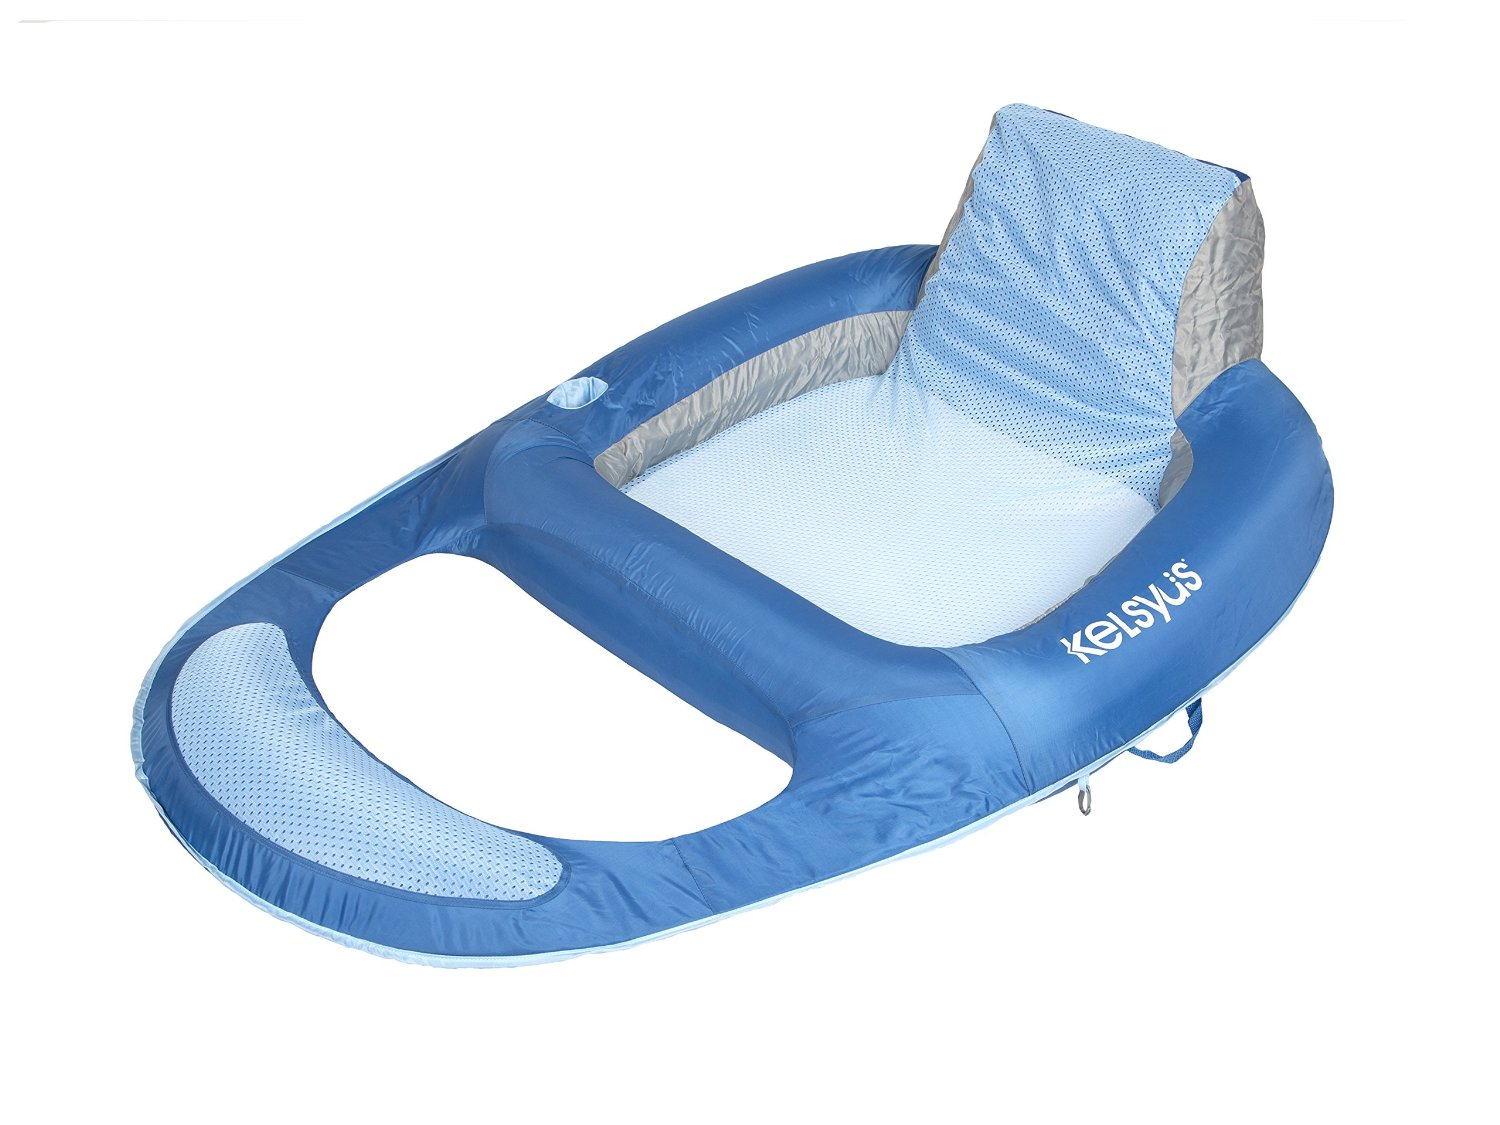 Floating Chair 10 Best Swimming Pool Loungers 2018 Top Floating Pool